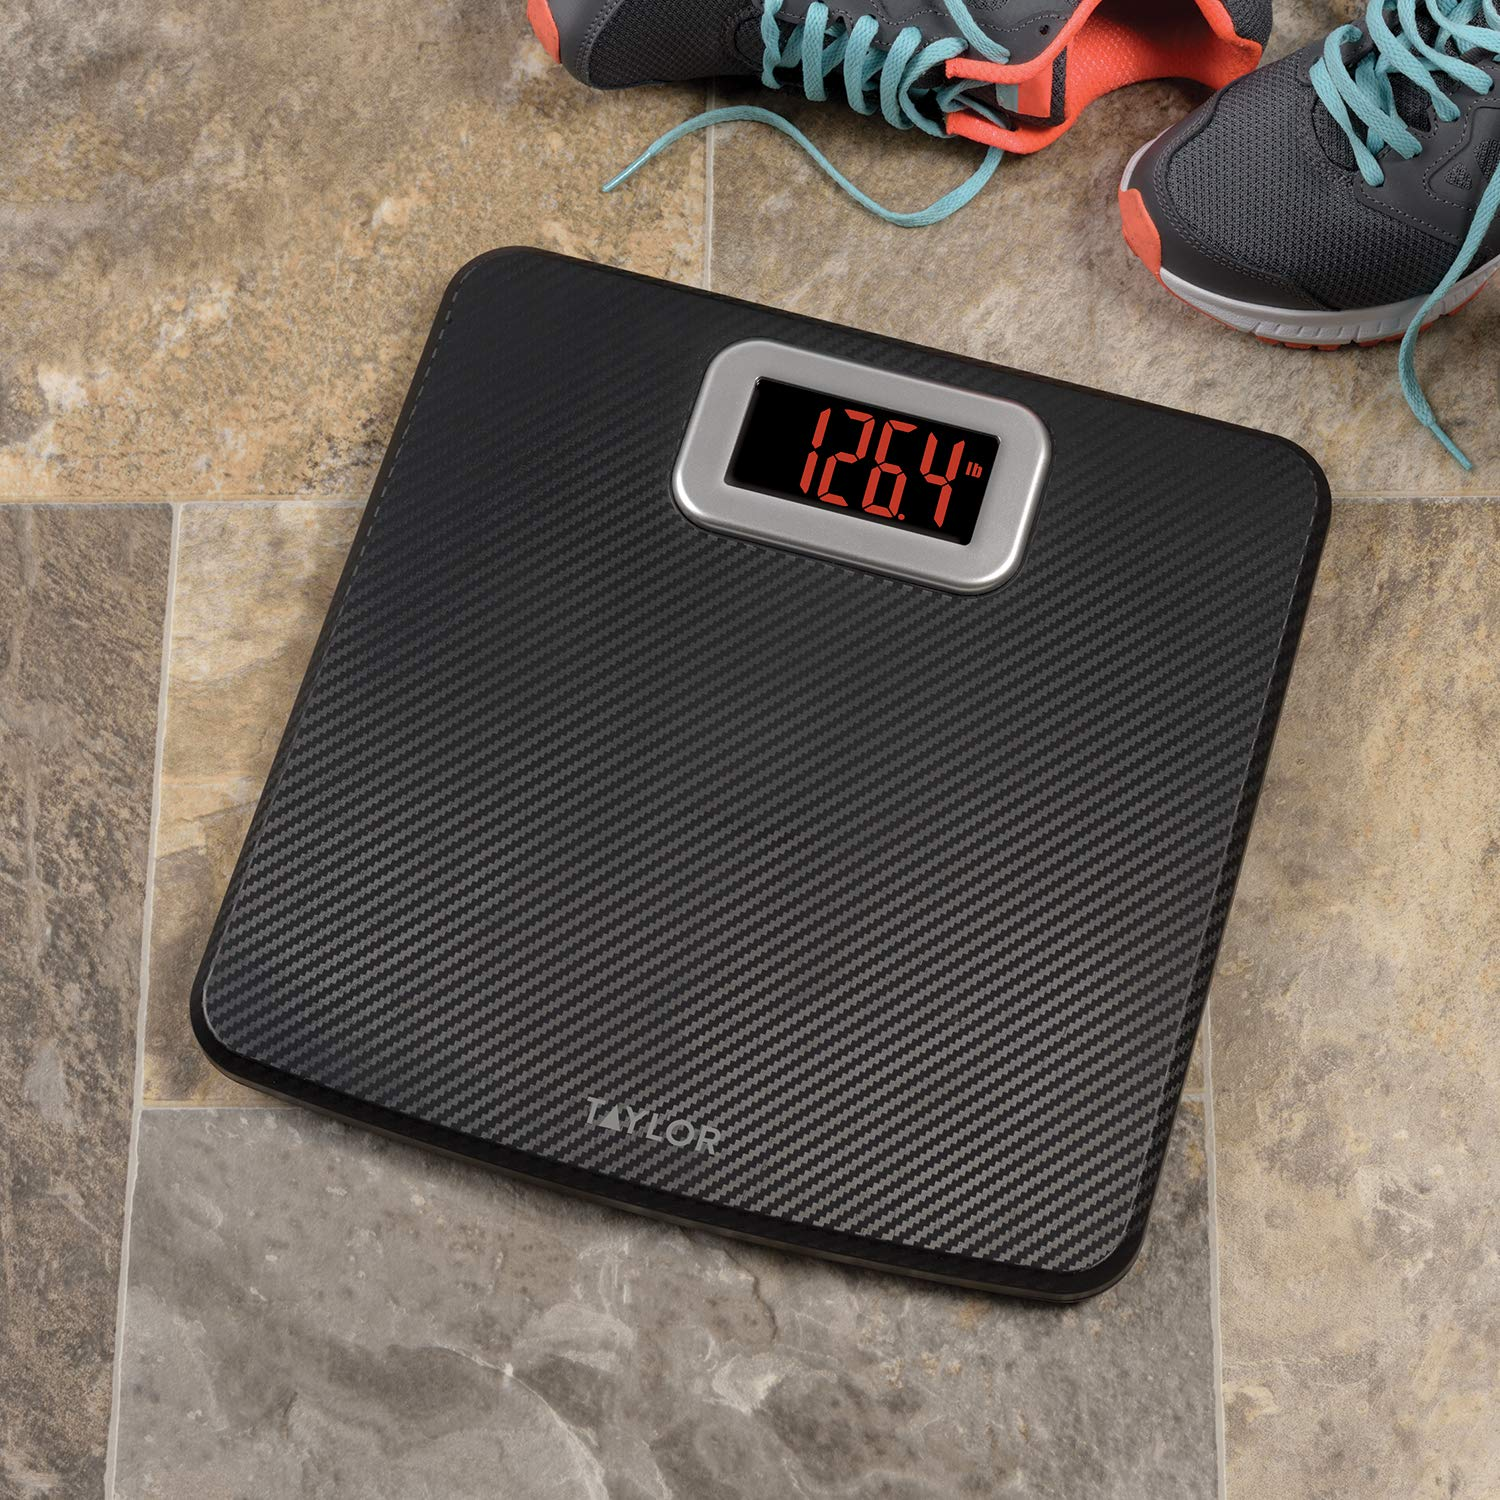 Taylor Precision Products Taylor Digital Bathroom Scale with Carbon Fiber Finish